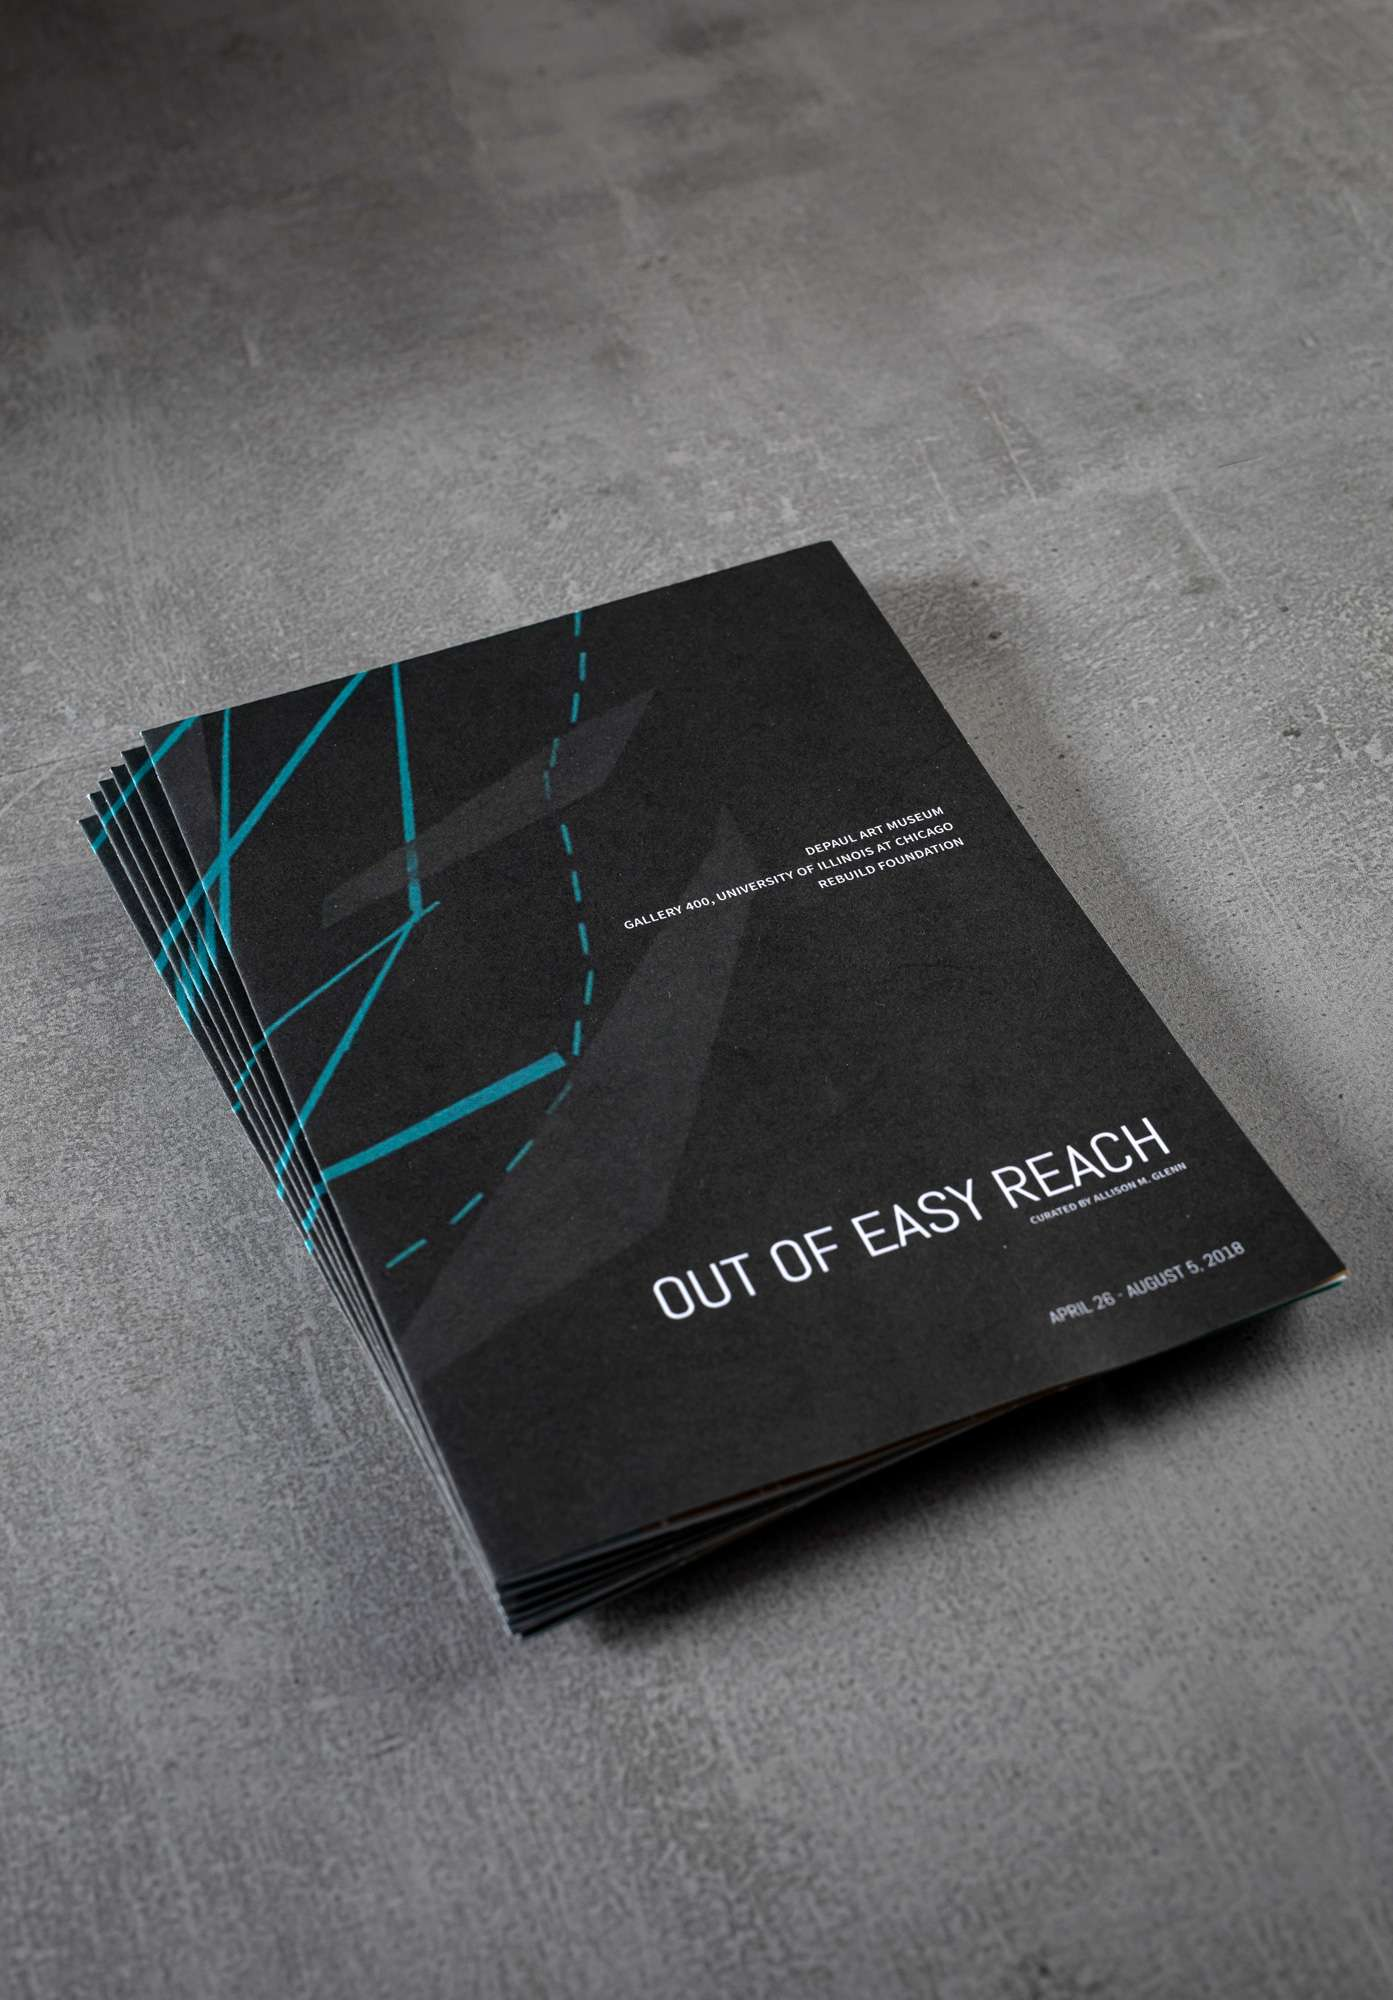 Catalogue cover for Out of Easy Reach